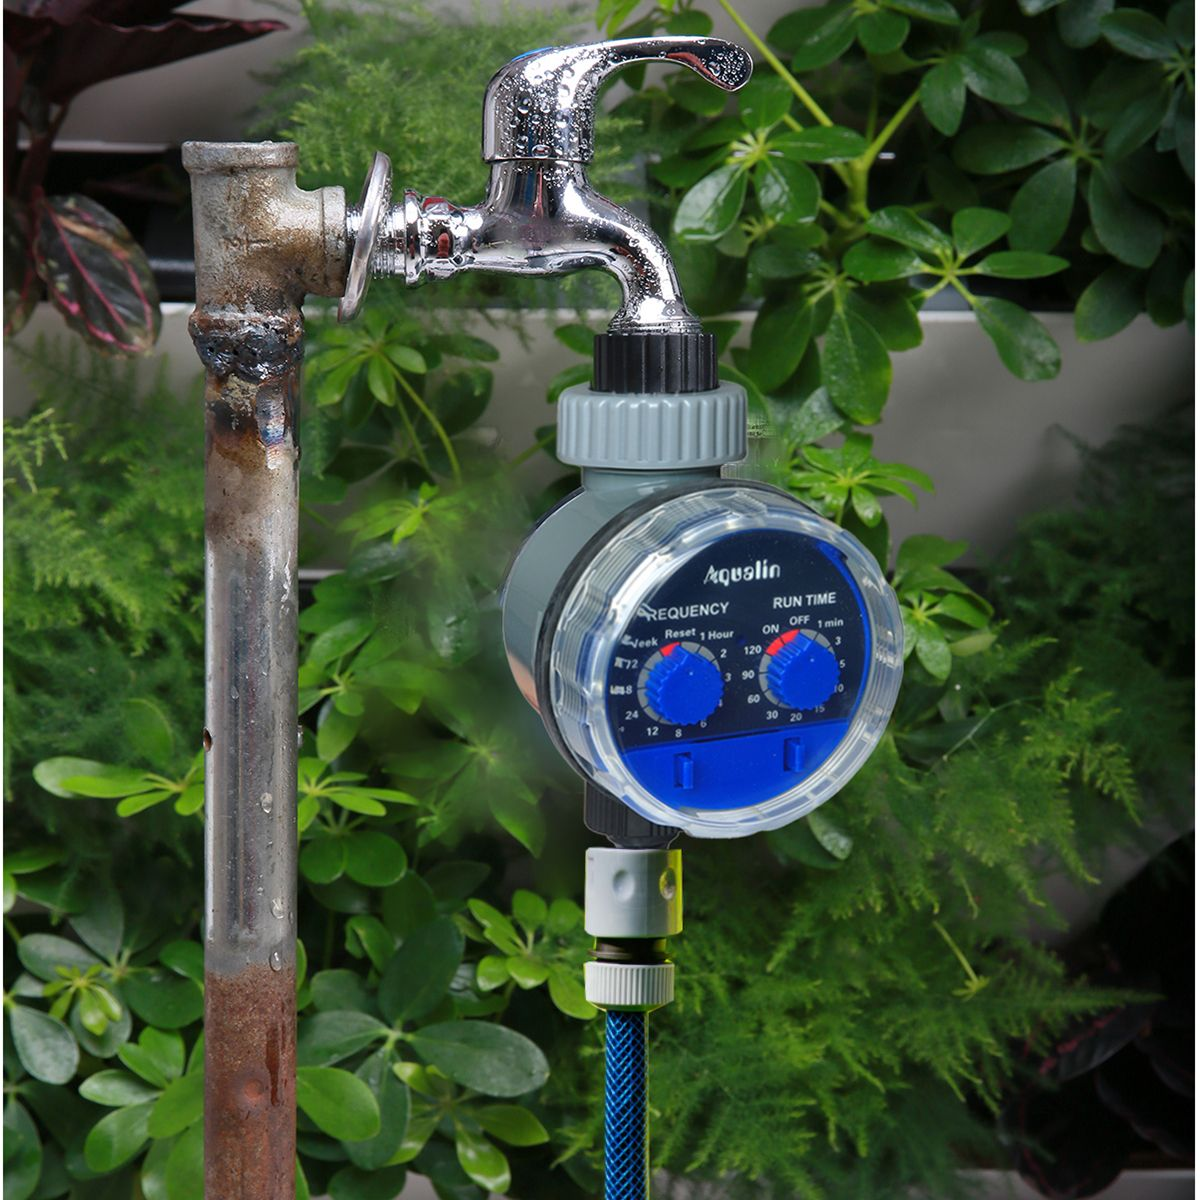 Electronic Water Hose Timer Garden Irrigation Controller Two Dial Color Blue 613869410523 Ebay Water Timer Irrigation Controller Garden Irrigation